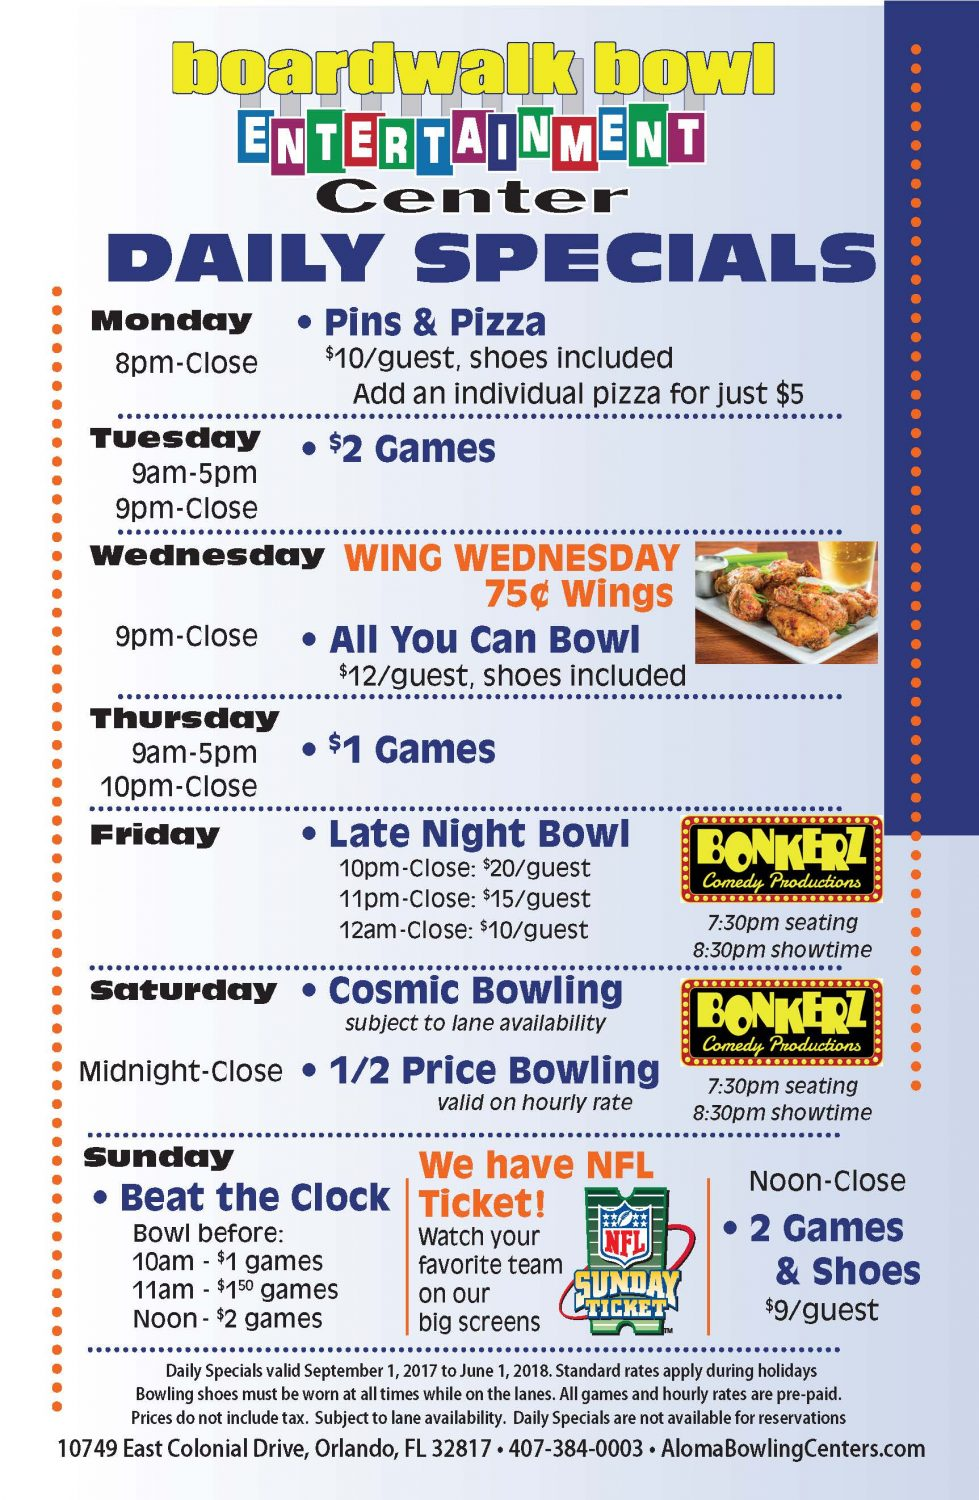 Fall Daily Specials